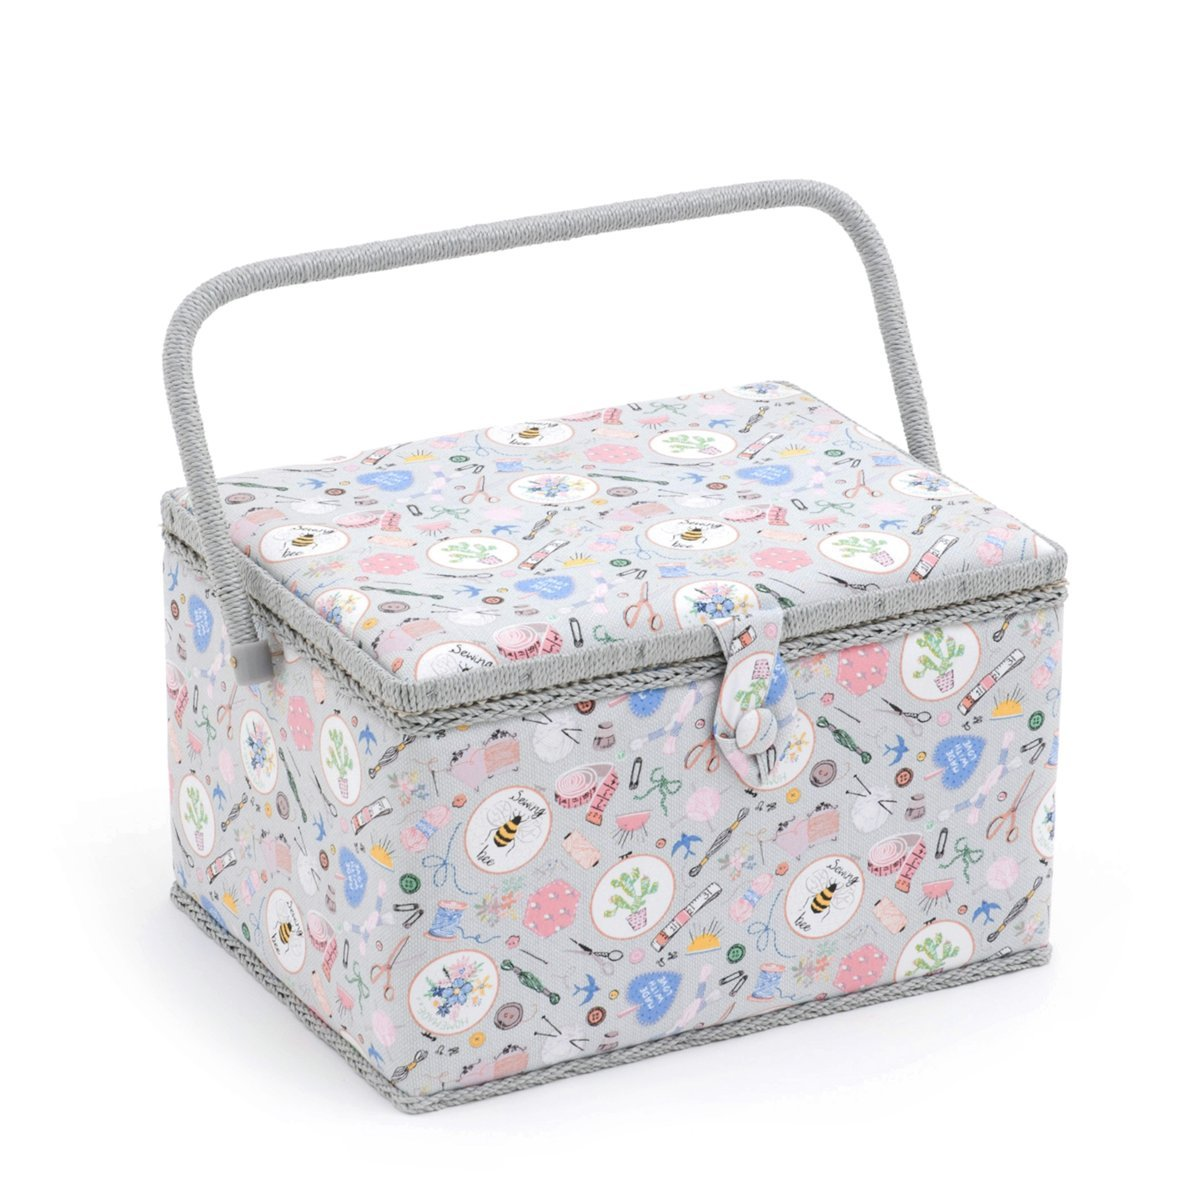 Hobby Gift 'Homemade' Large Rectangle Sewing Box 23.5 x 31 x 20cm (d/w/h) by Hobby Gift